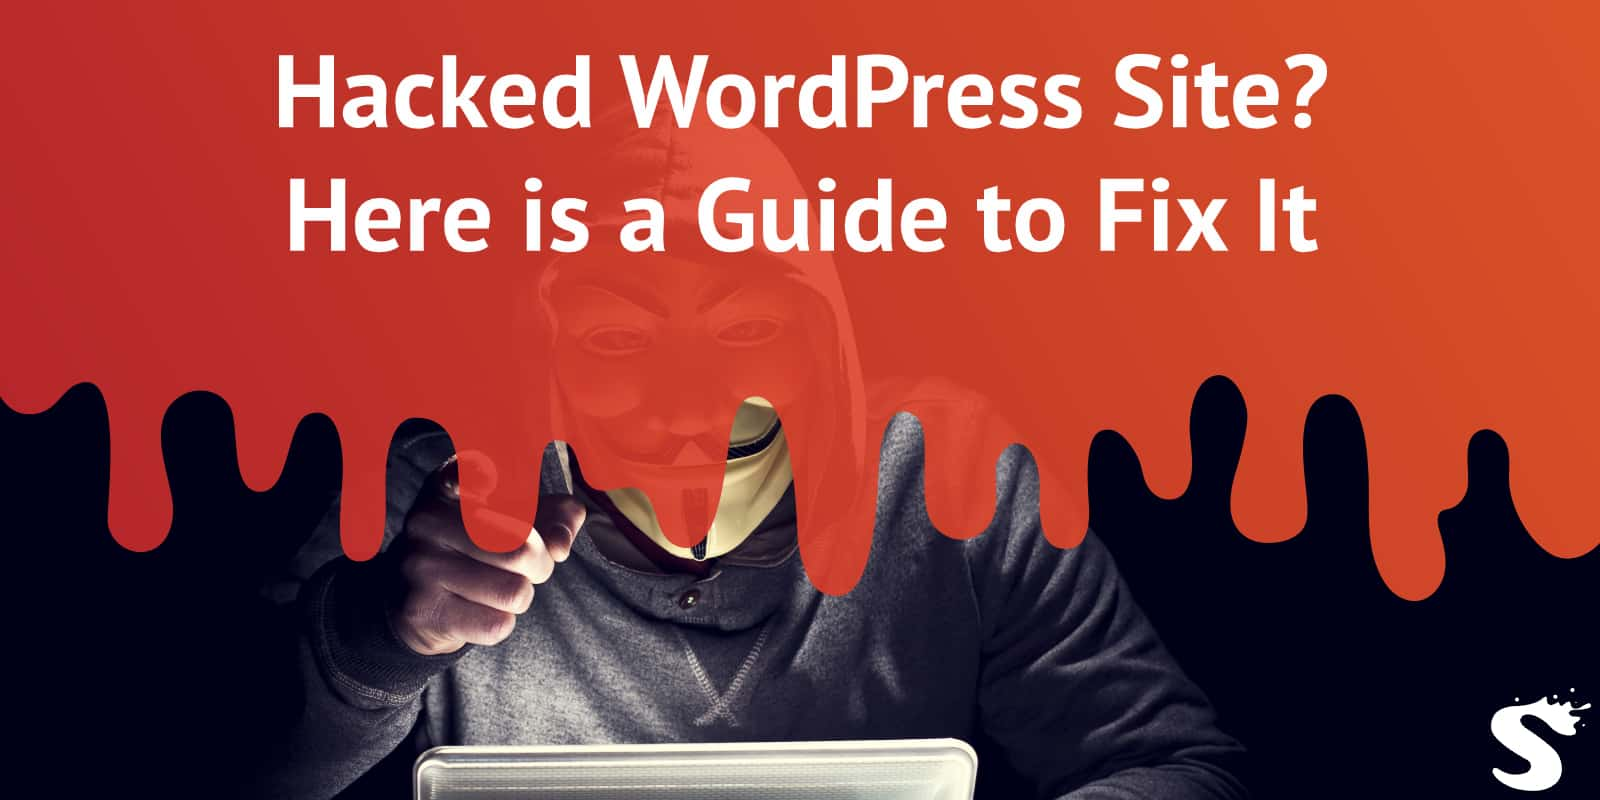 Guide to fix hacked wordpress